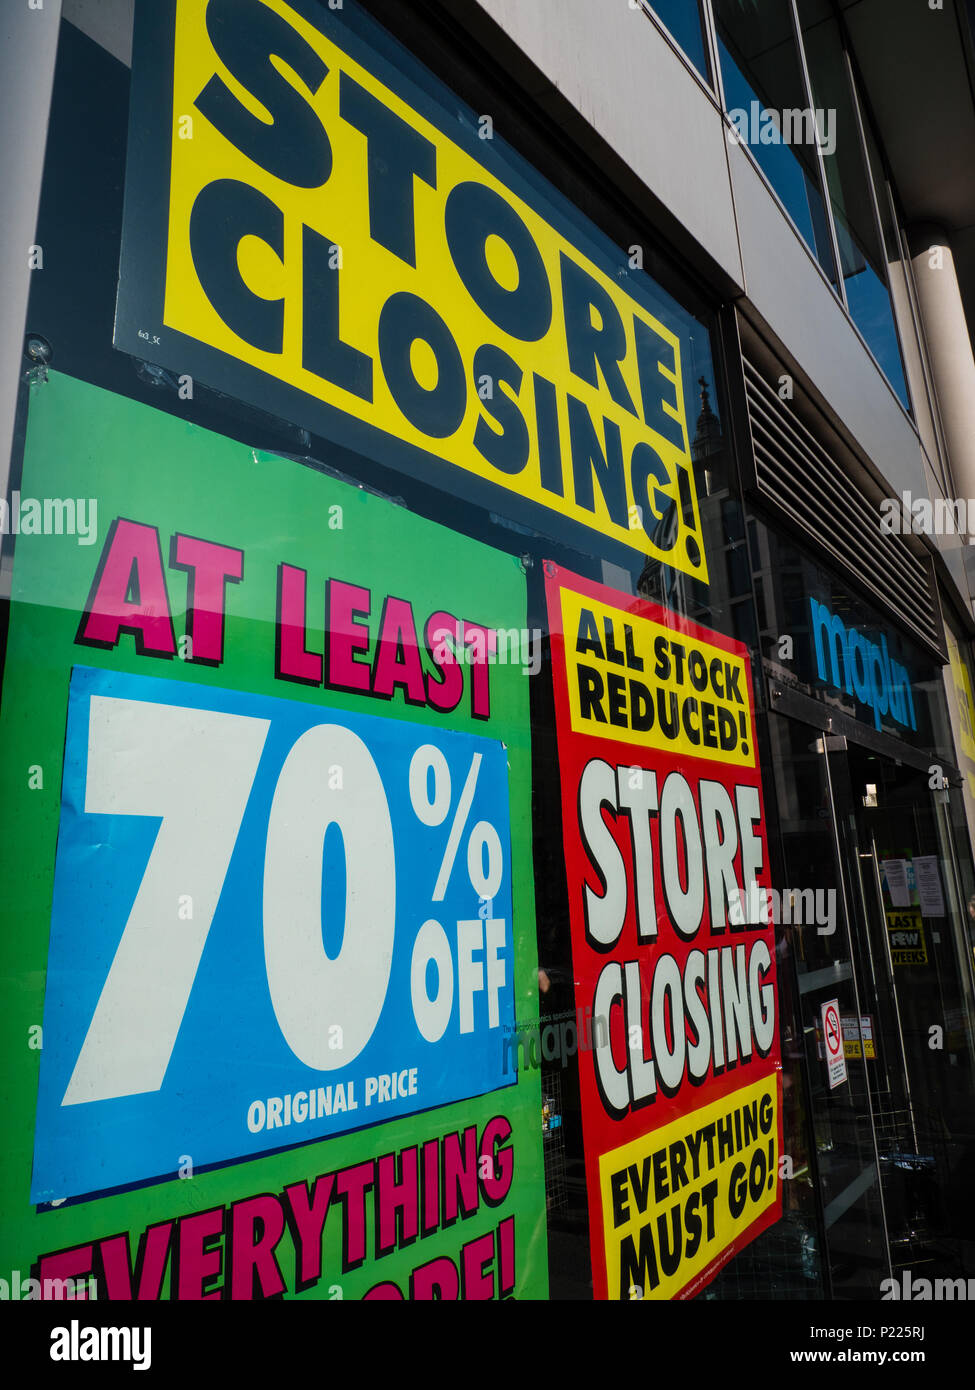 Maplin's Electronic Store Closing Down, City of London, London, England, UK, GB. - Stock Image